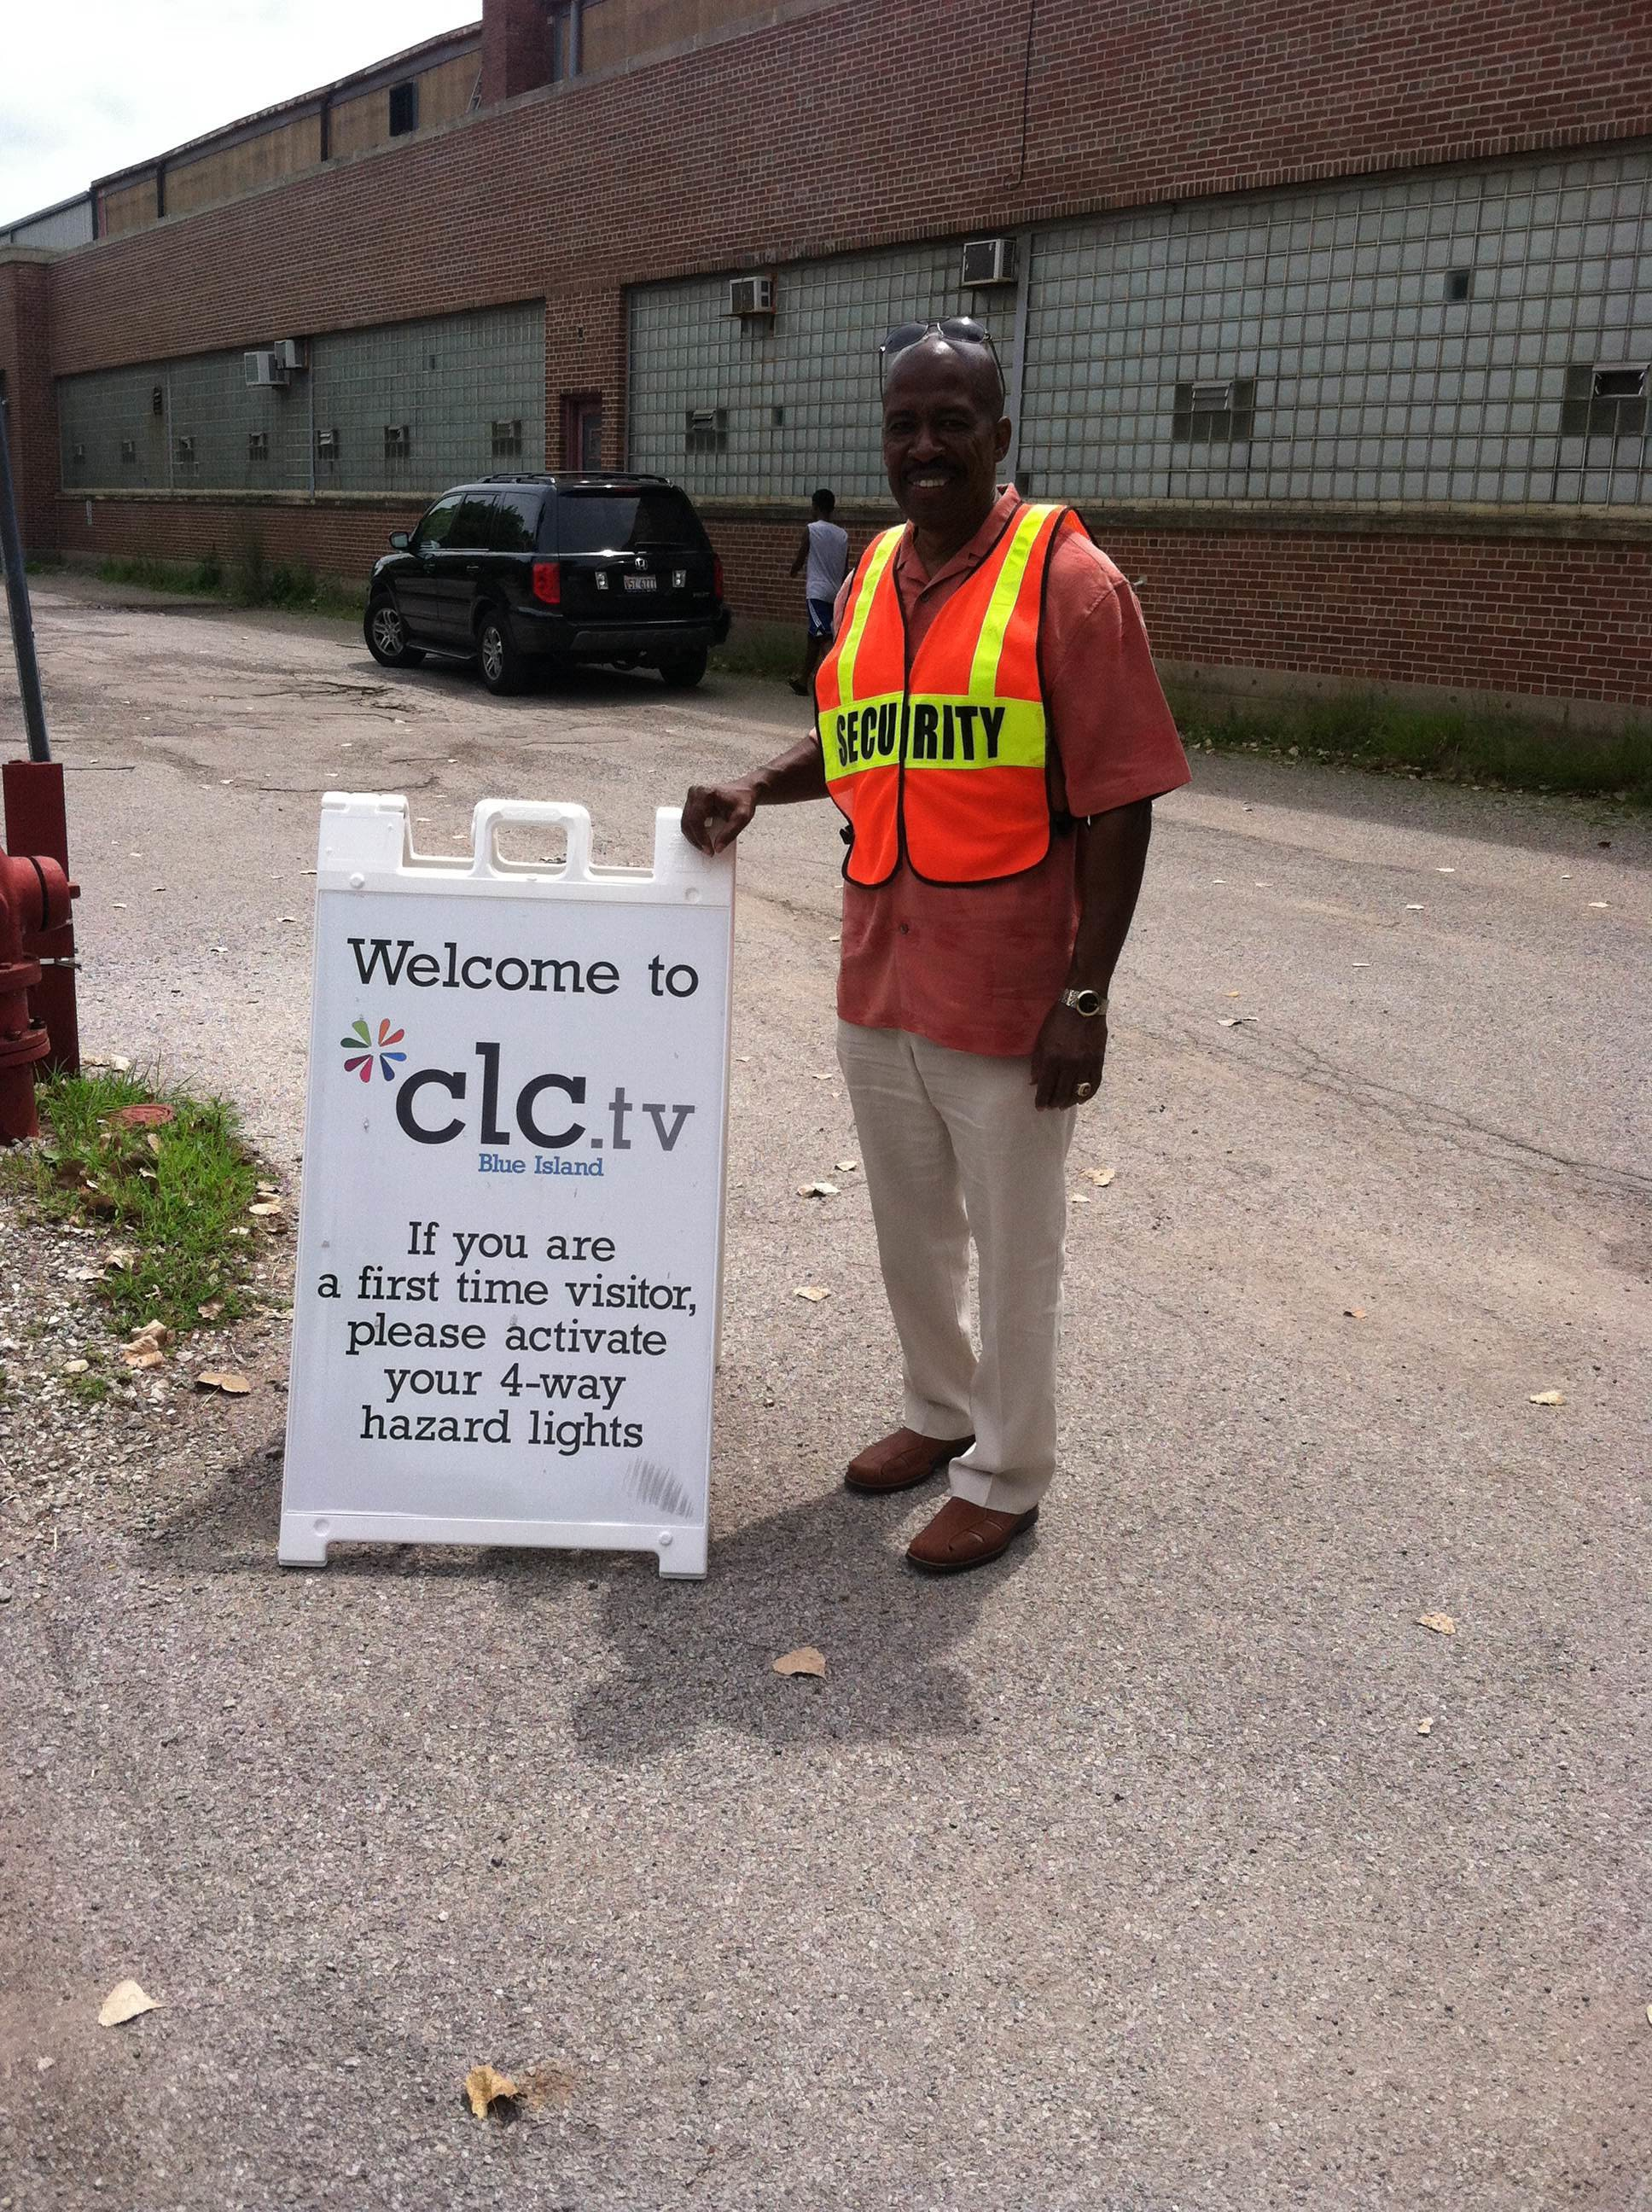 Heroes of the day: our Parking Lot Volunteers (like Len Stallworth here at our Blue Island campus) who endured the heat!